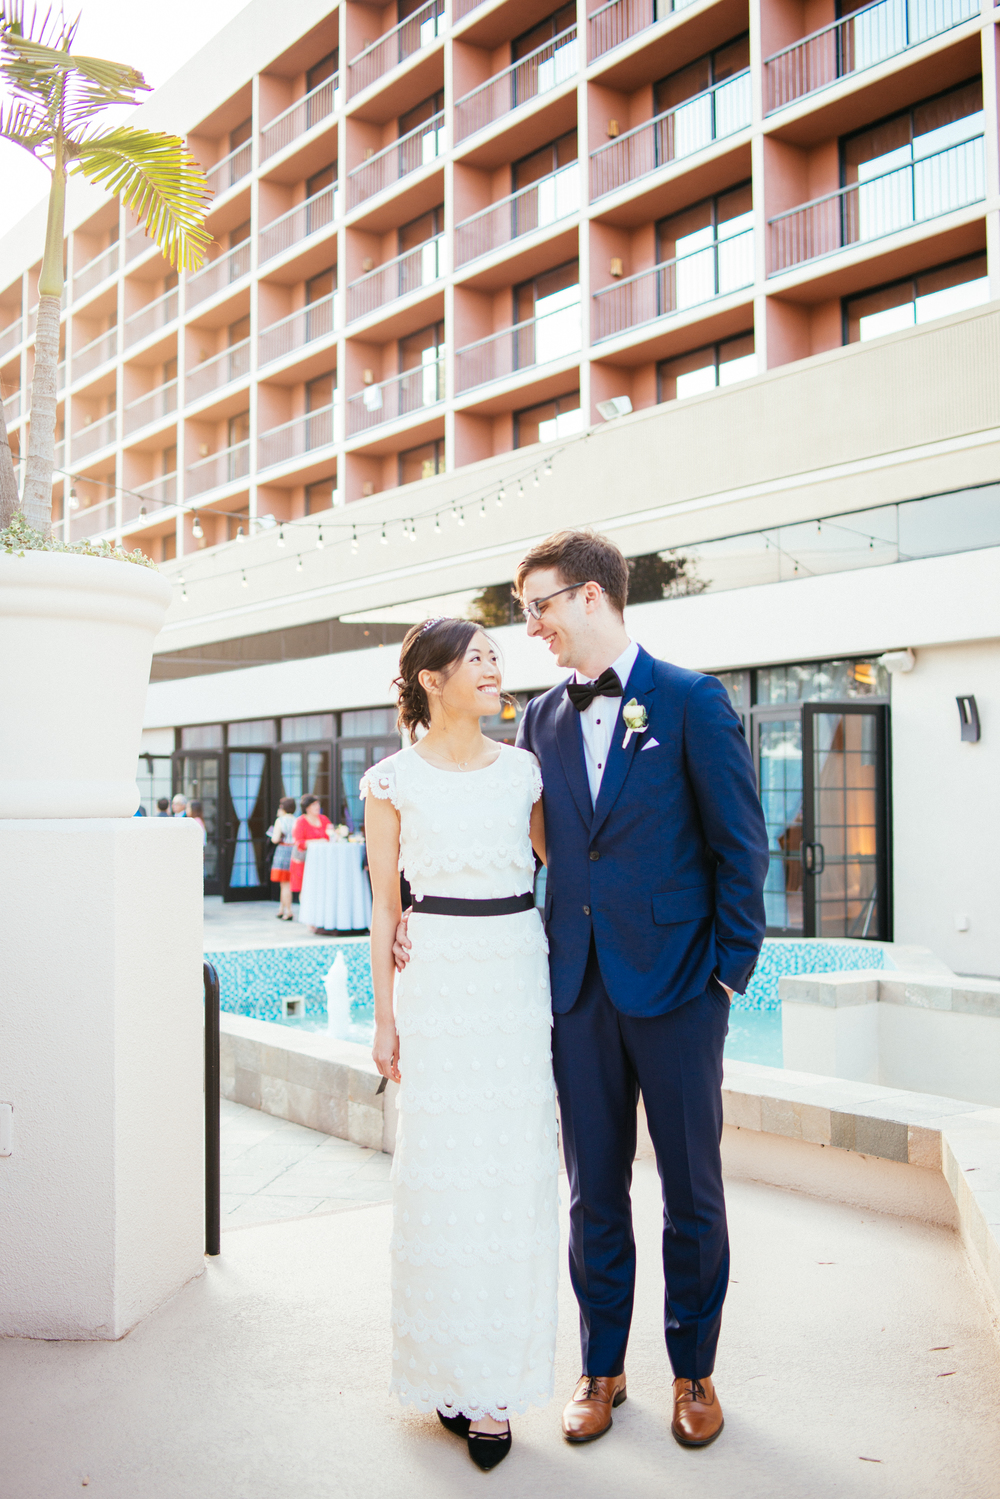 melissademata.com | Amy & Andrew Wedding